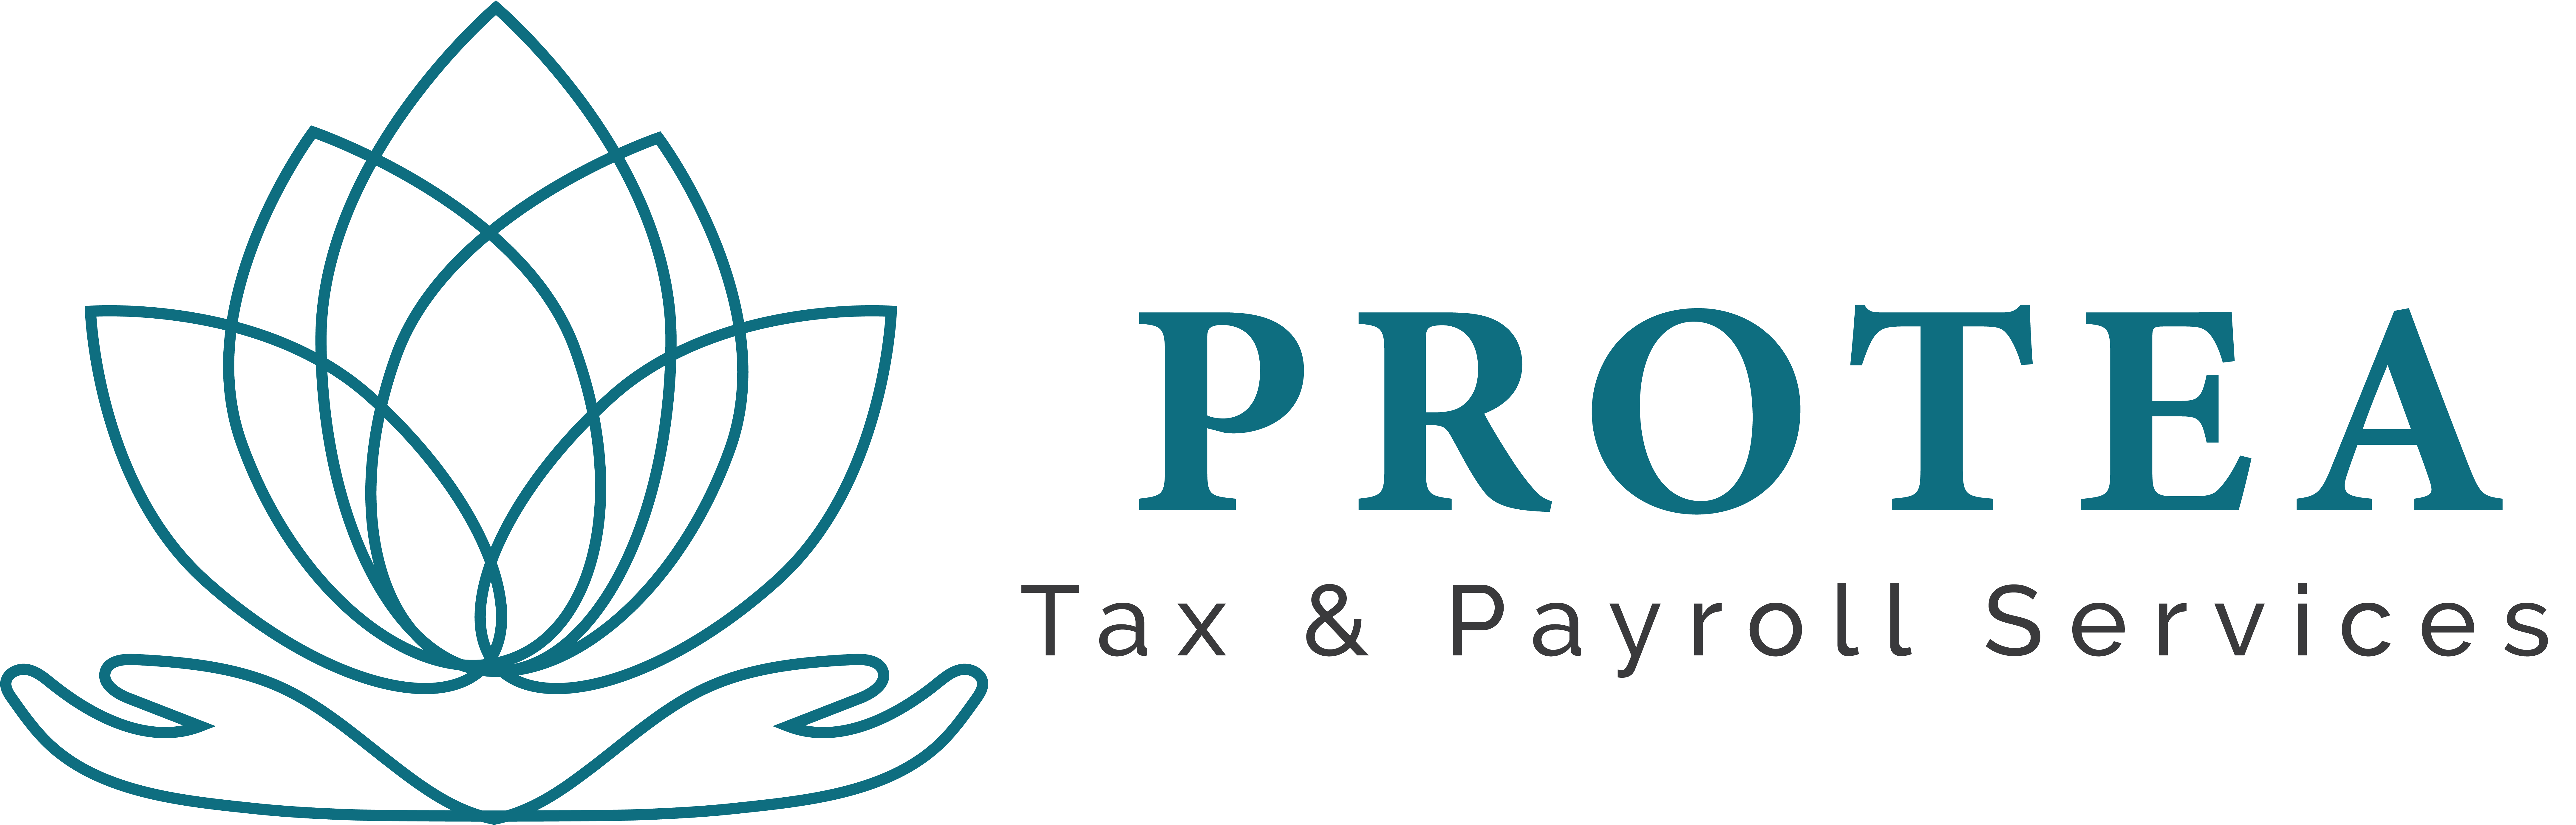 Protea Tax and Payroll Services